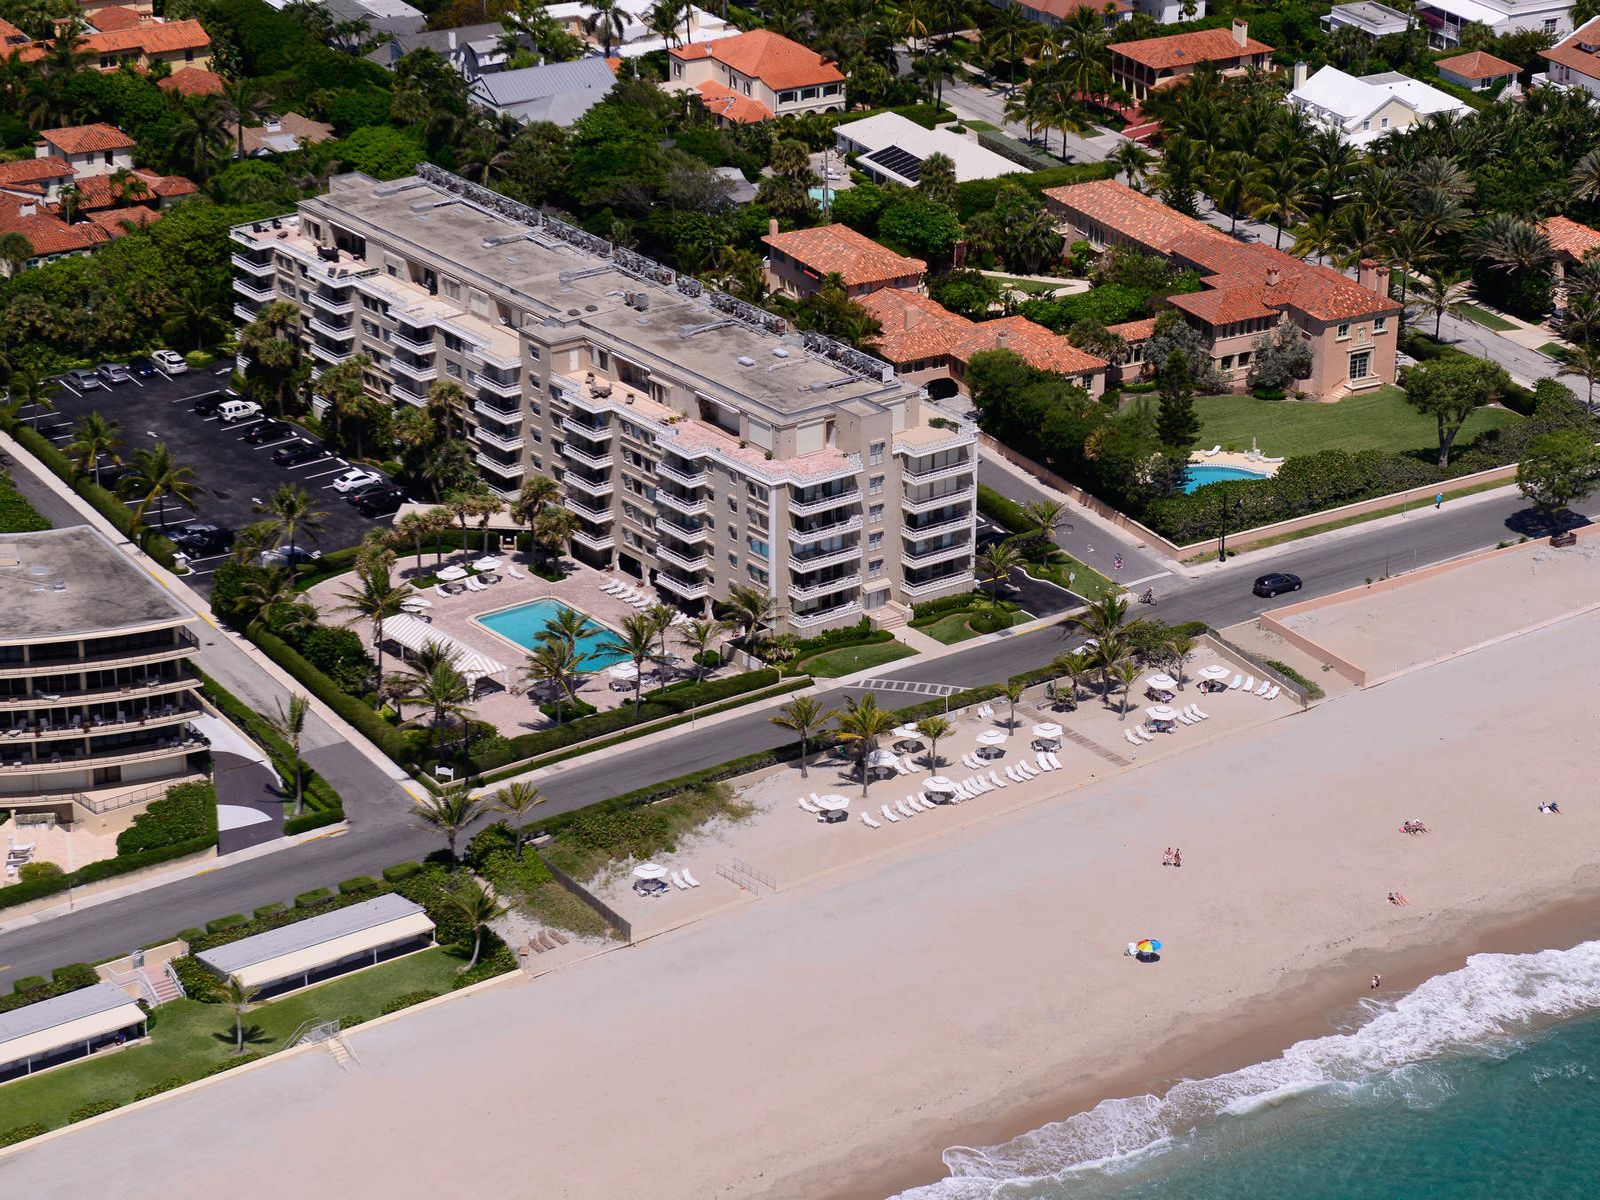 Ocean Towers 1 Bedroom Rental, Palm Beach FL Condominium - Palm Beach Real Estate